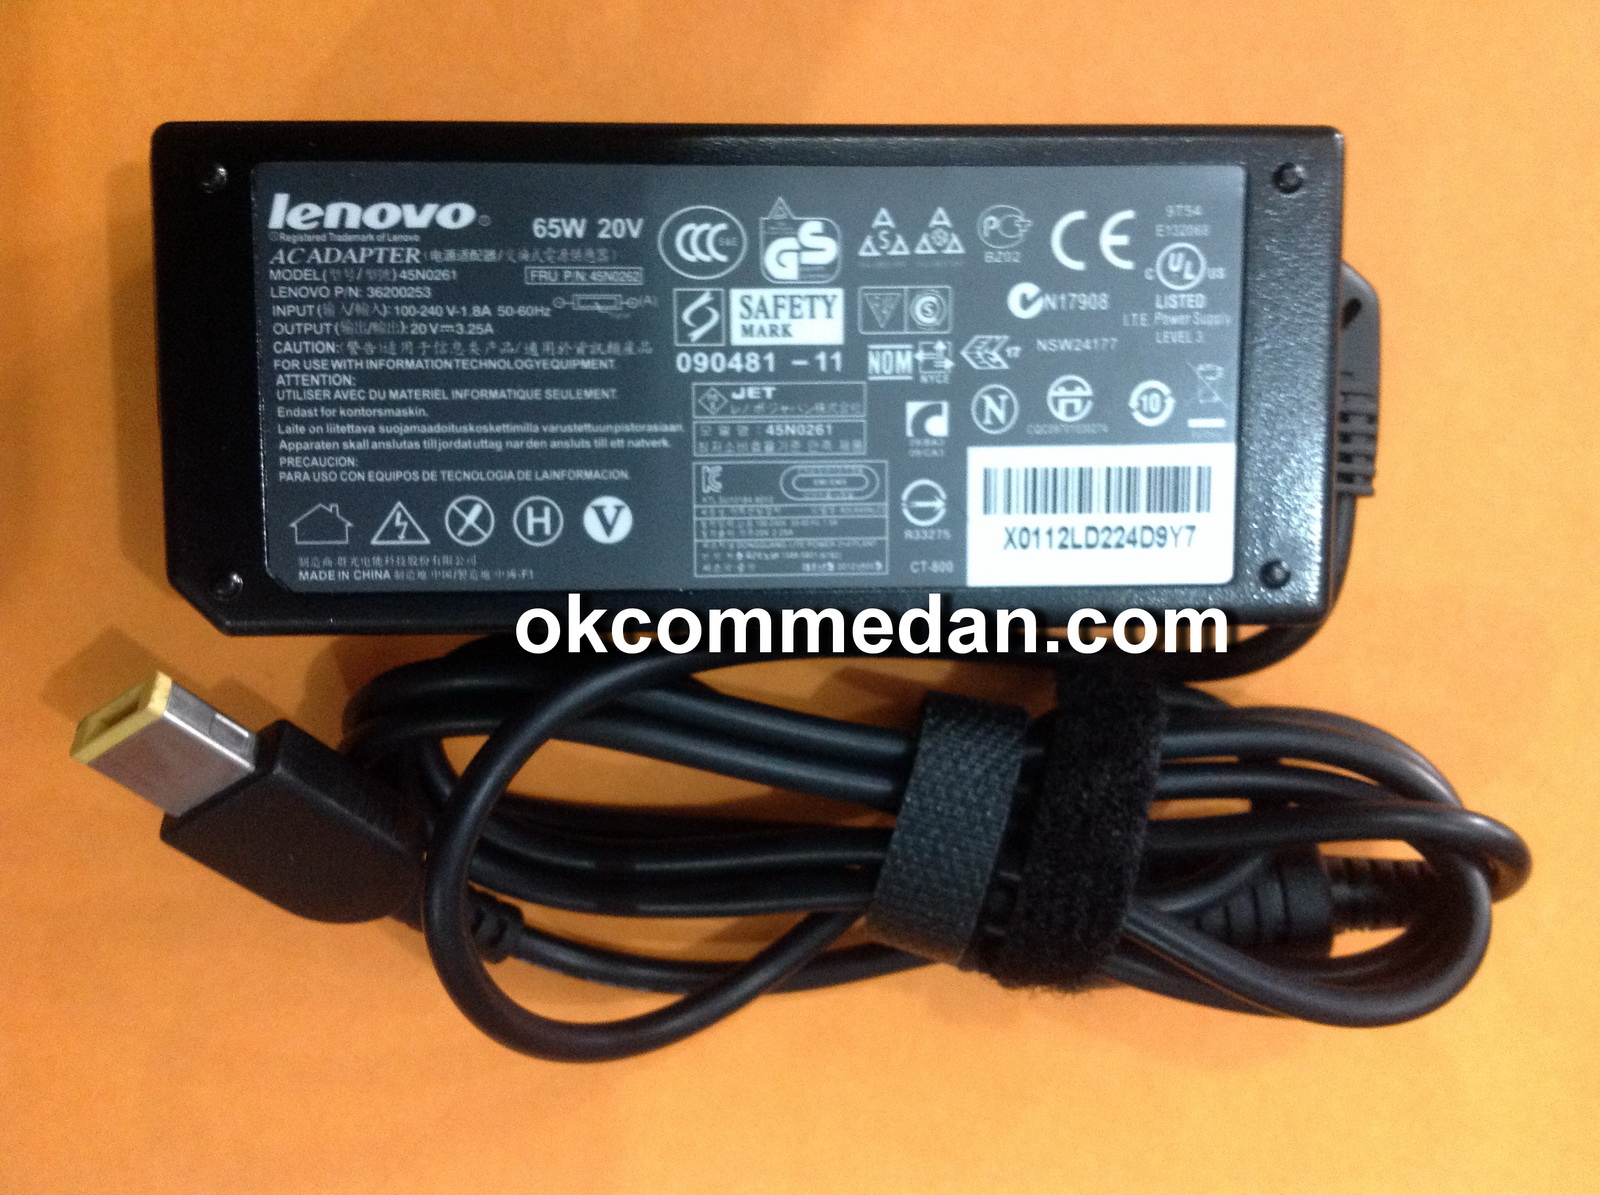 charger adaptor asli notebook lenovo 65 watt 20v